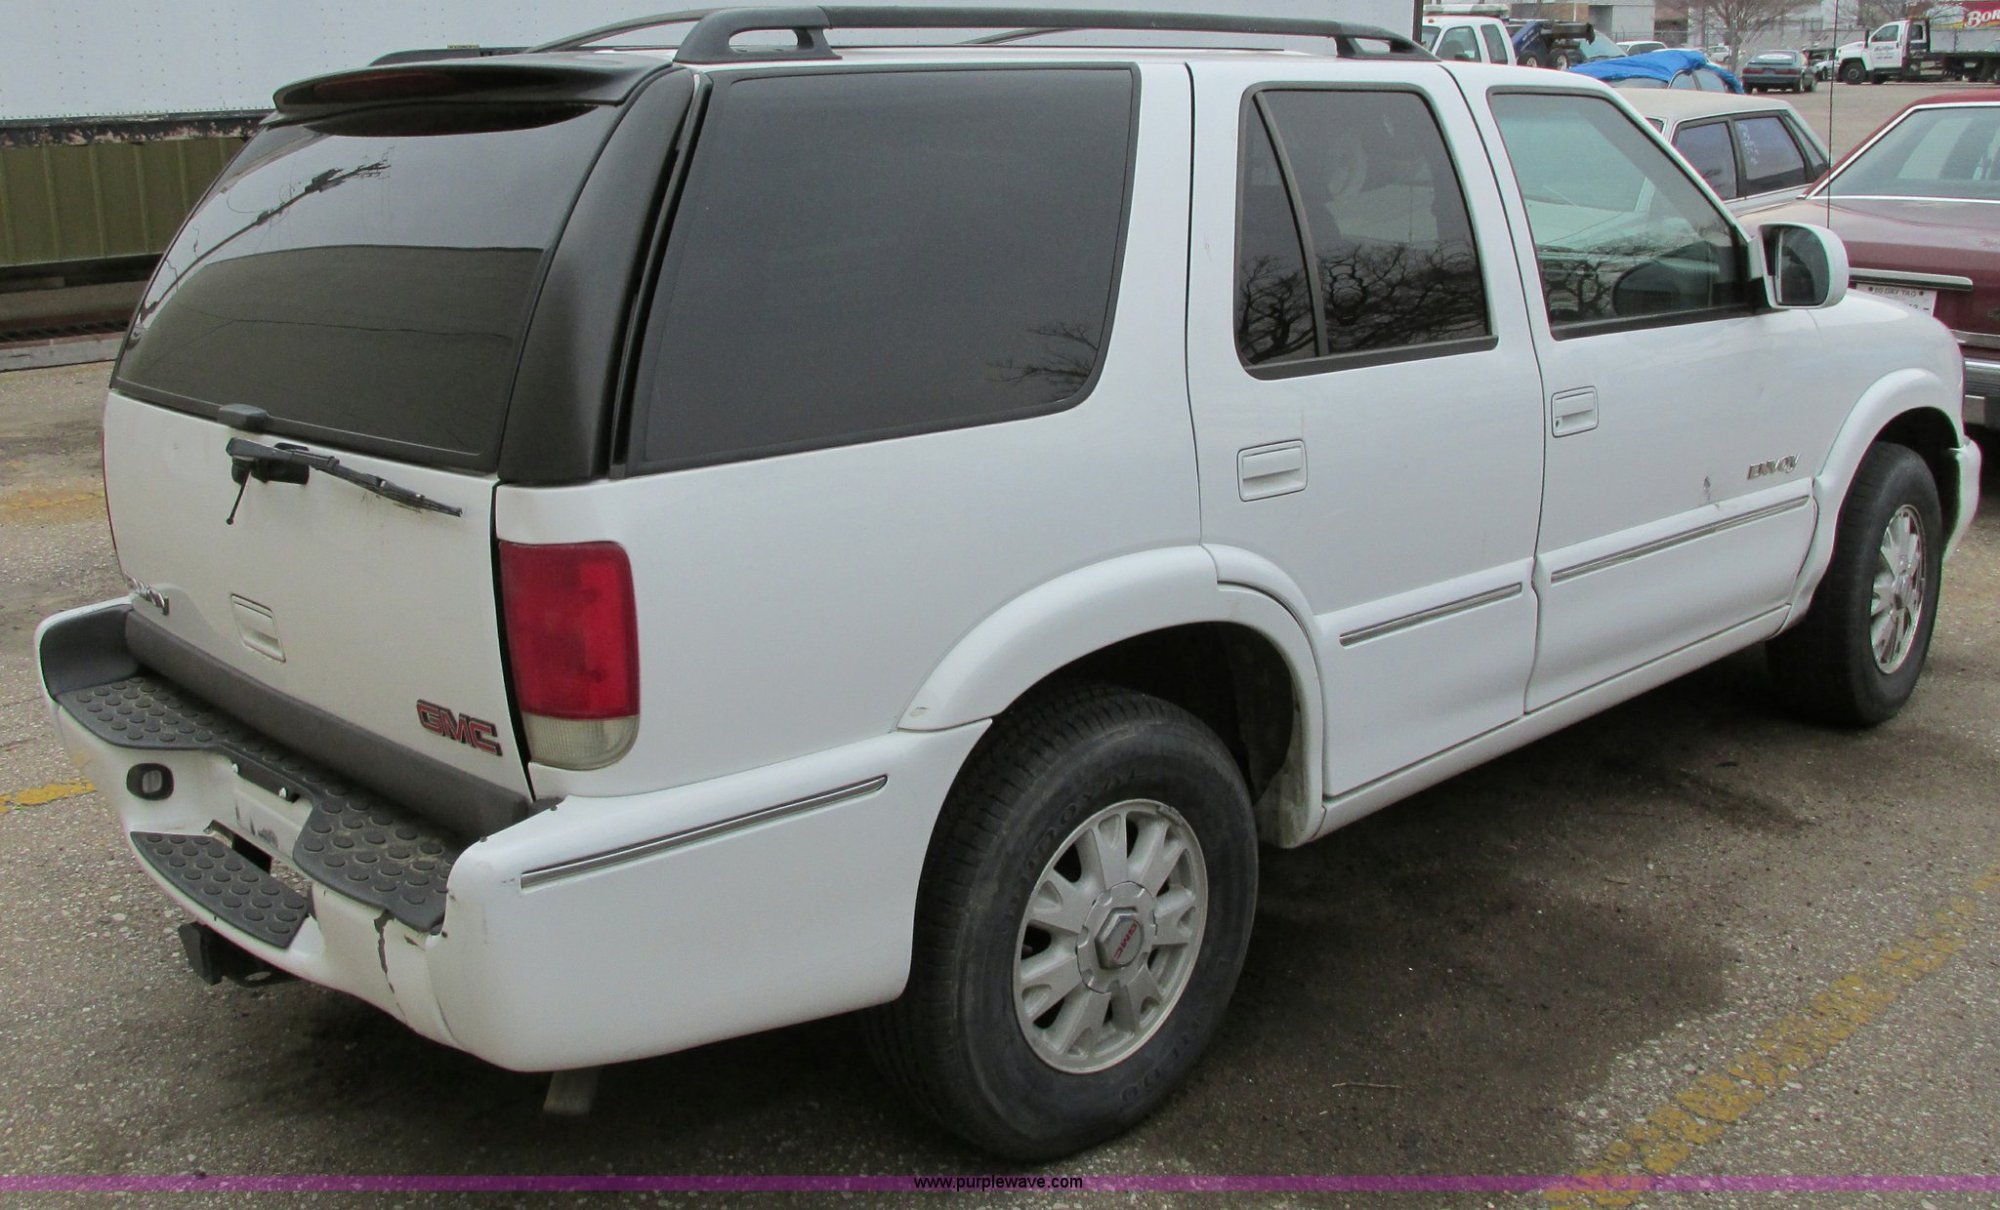 hight resolution of  2000 gmc envoy suv full size in new window